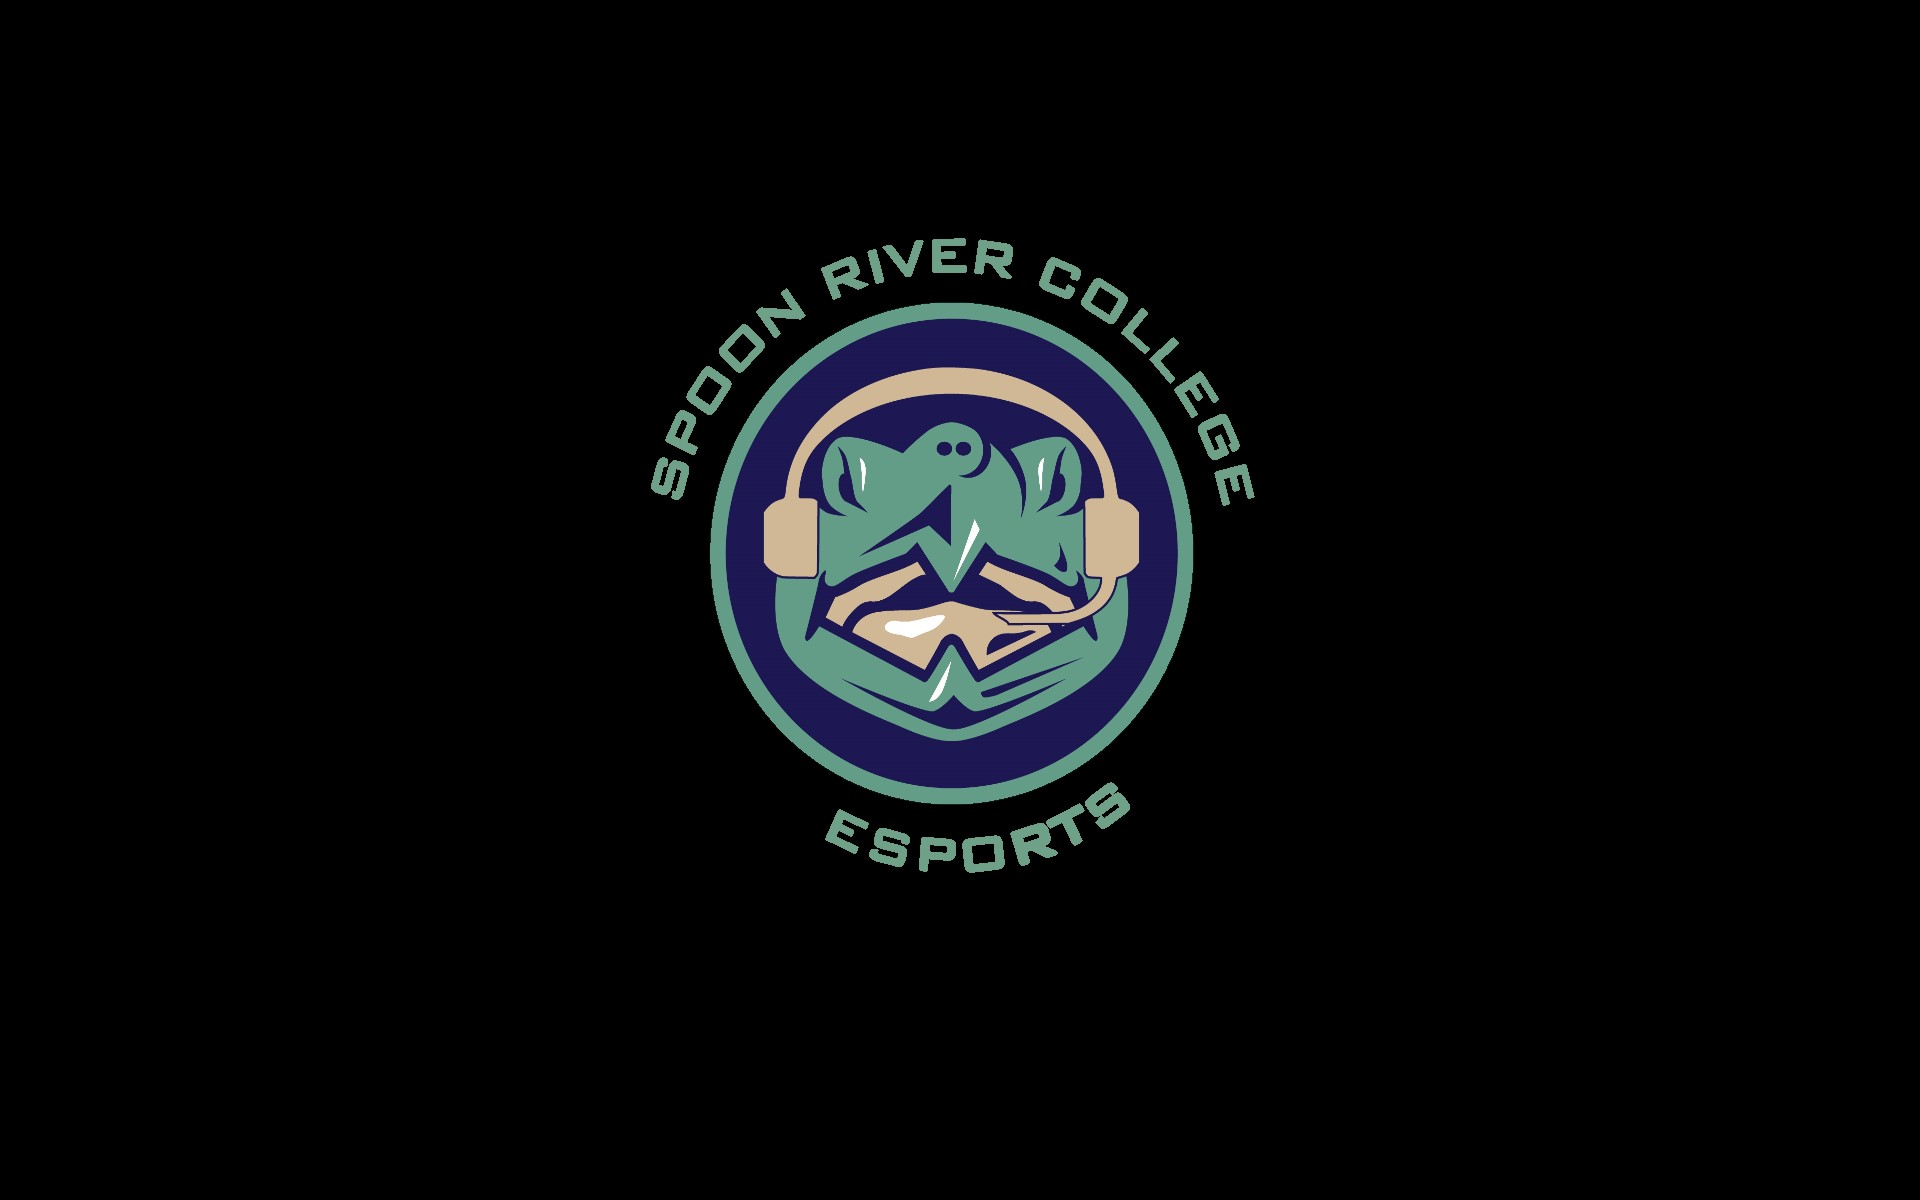 Spoon River College Esports's logo